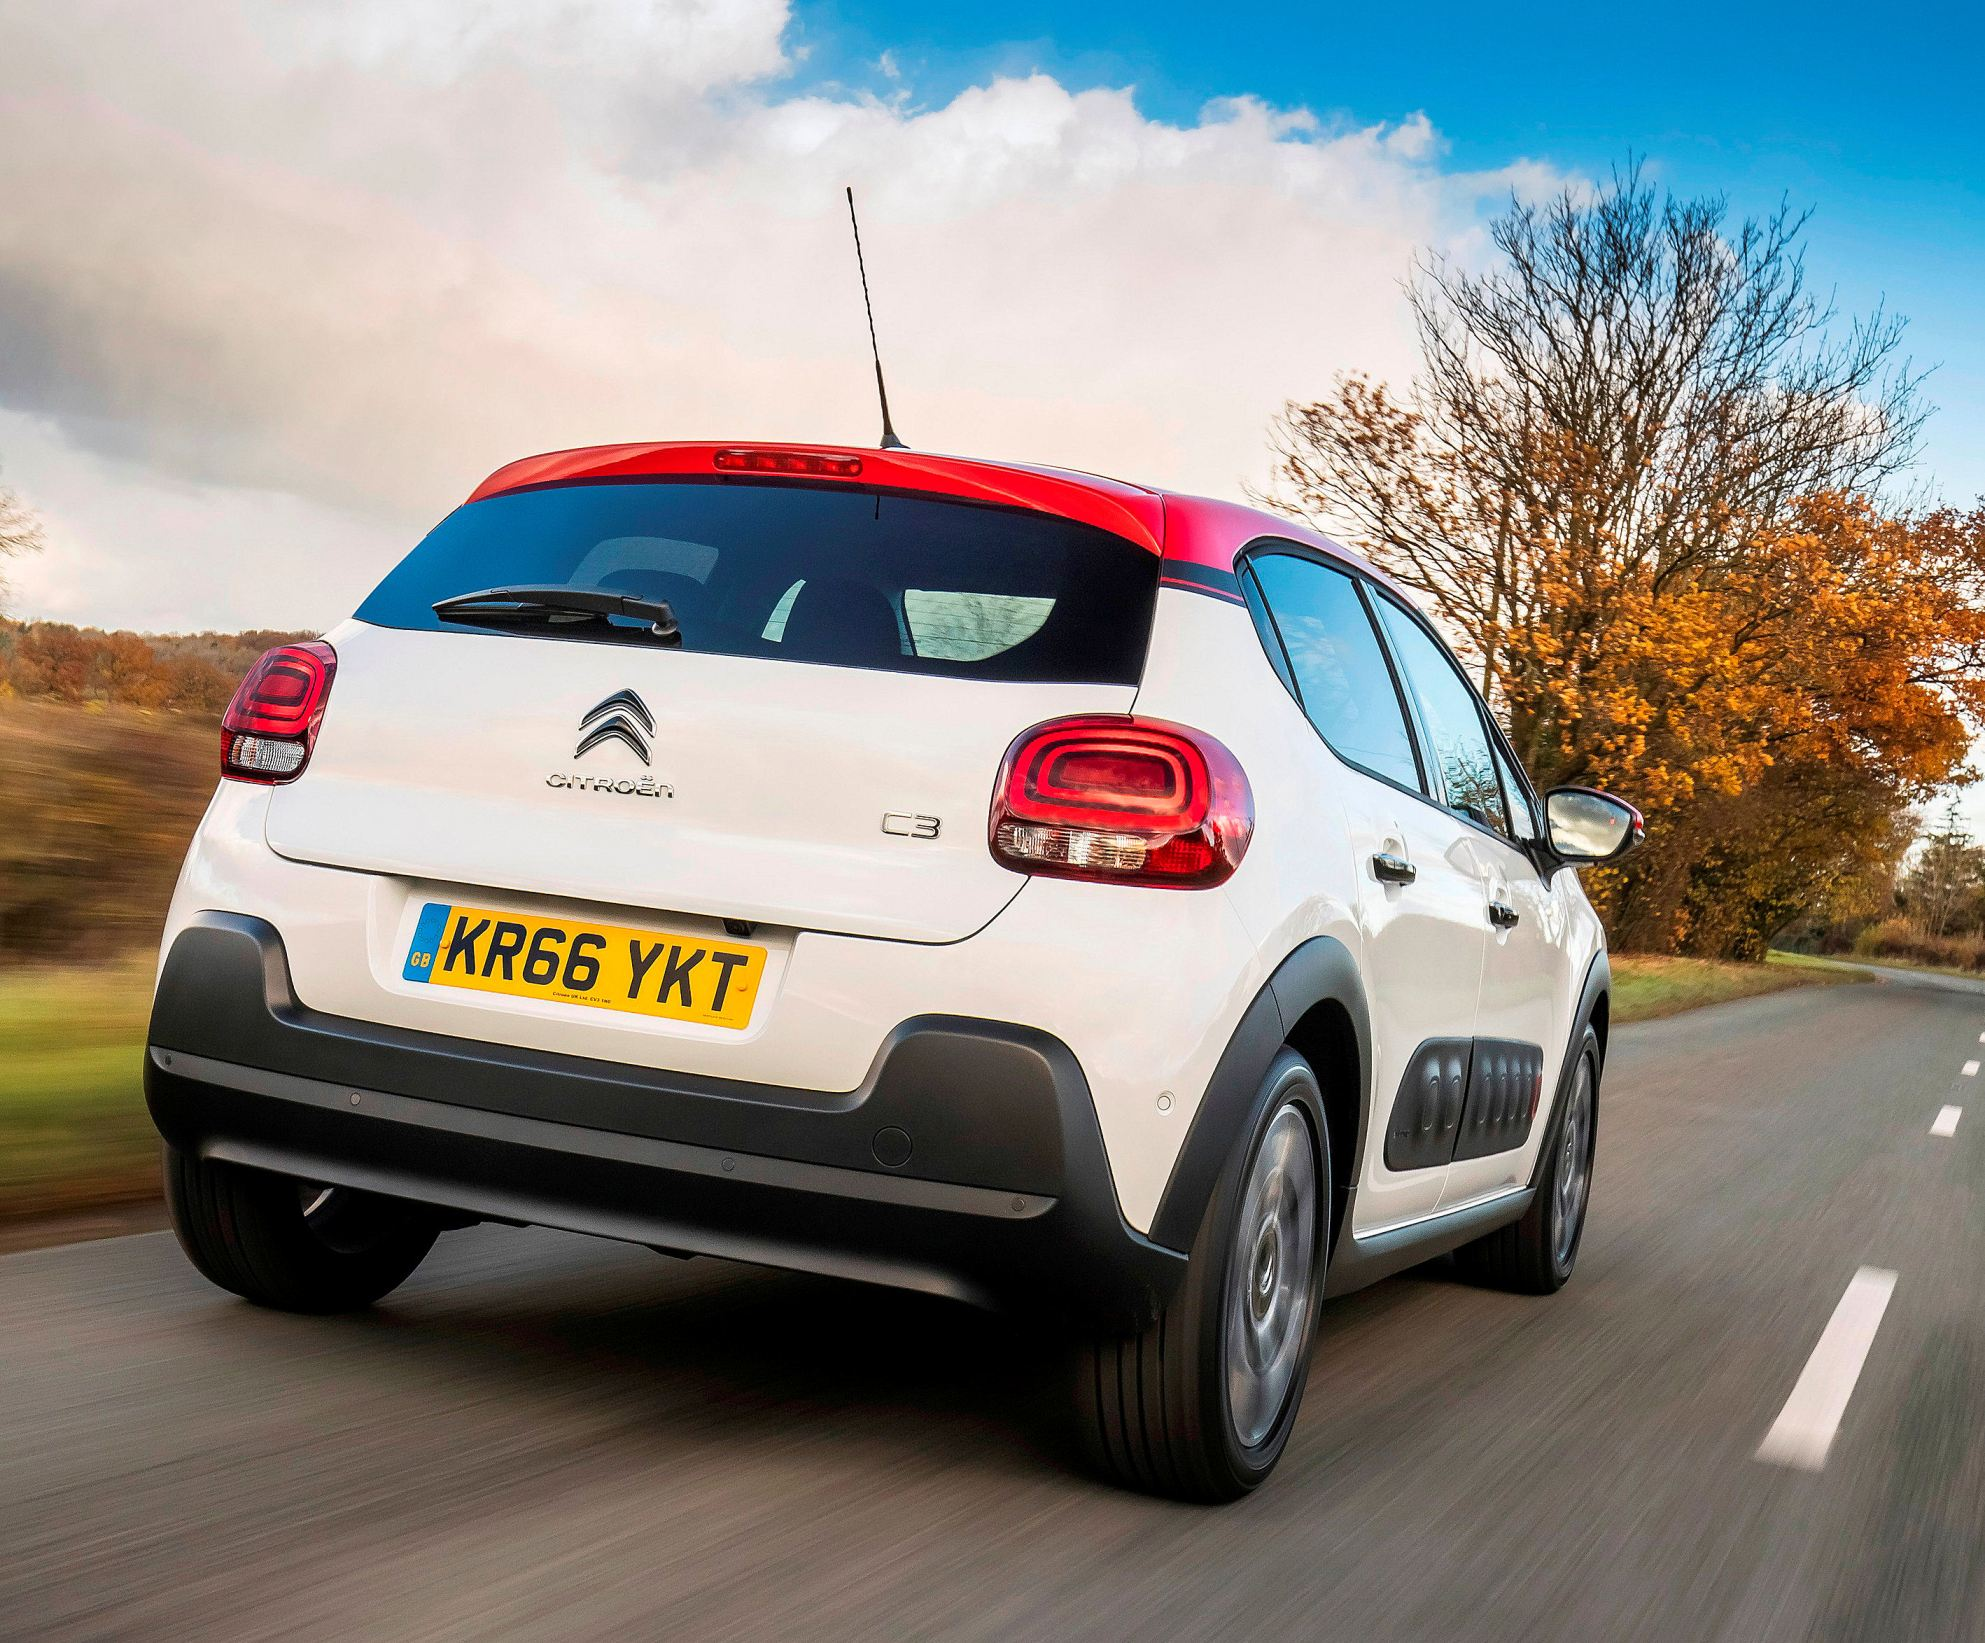 citroen-c3-rear-action